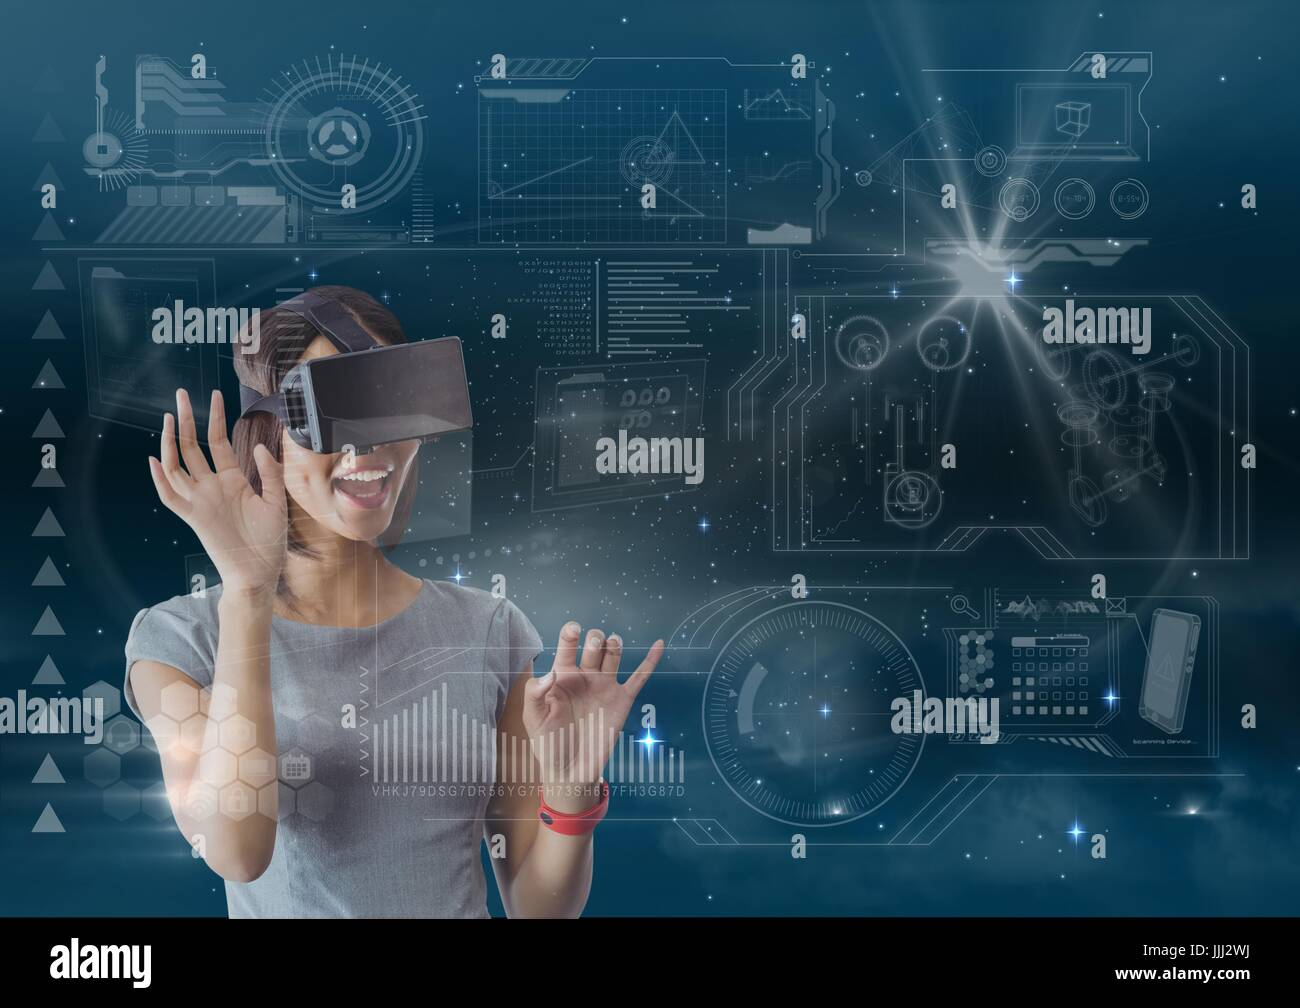 Happy woman in VR headset touching interface against blue sky with flares and stars - Stock Image